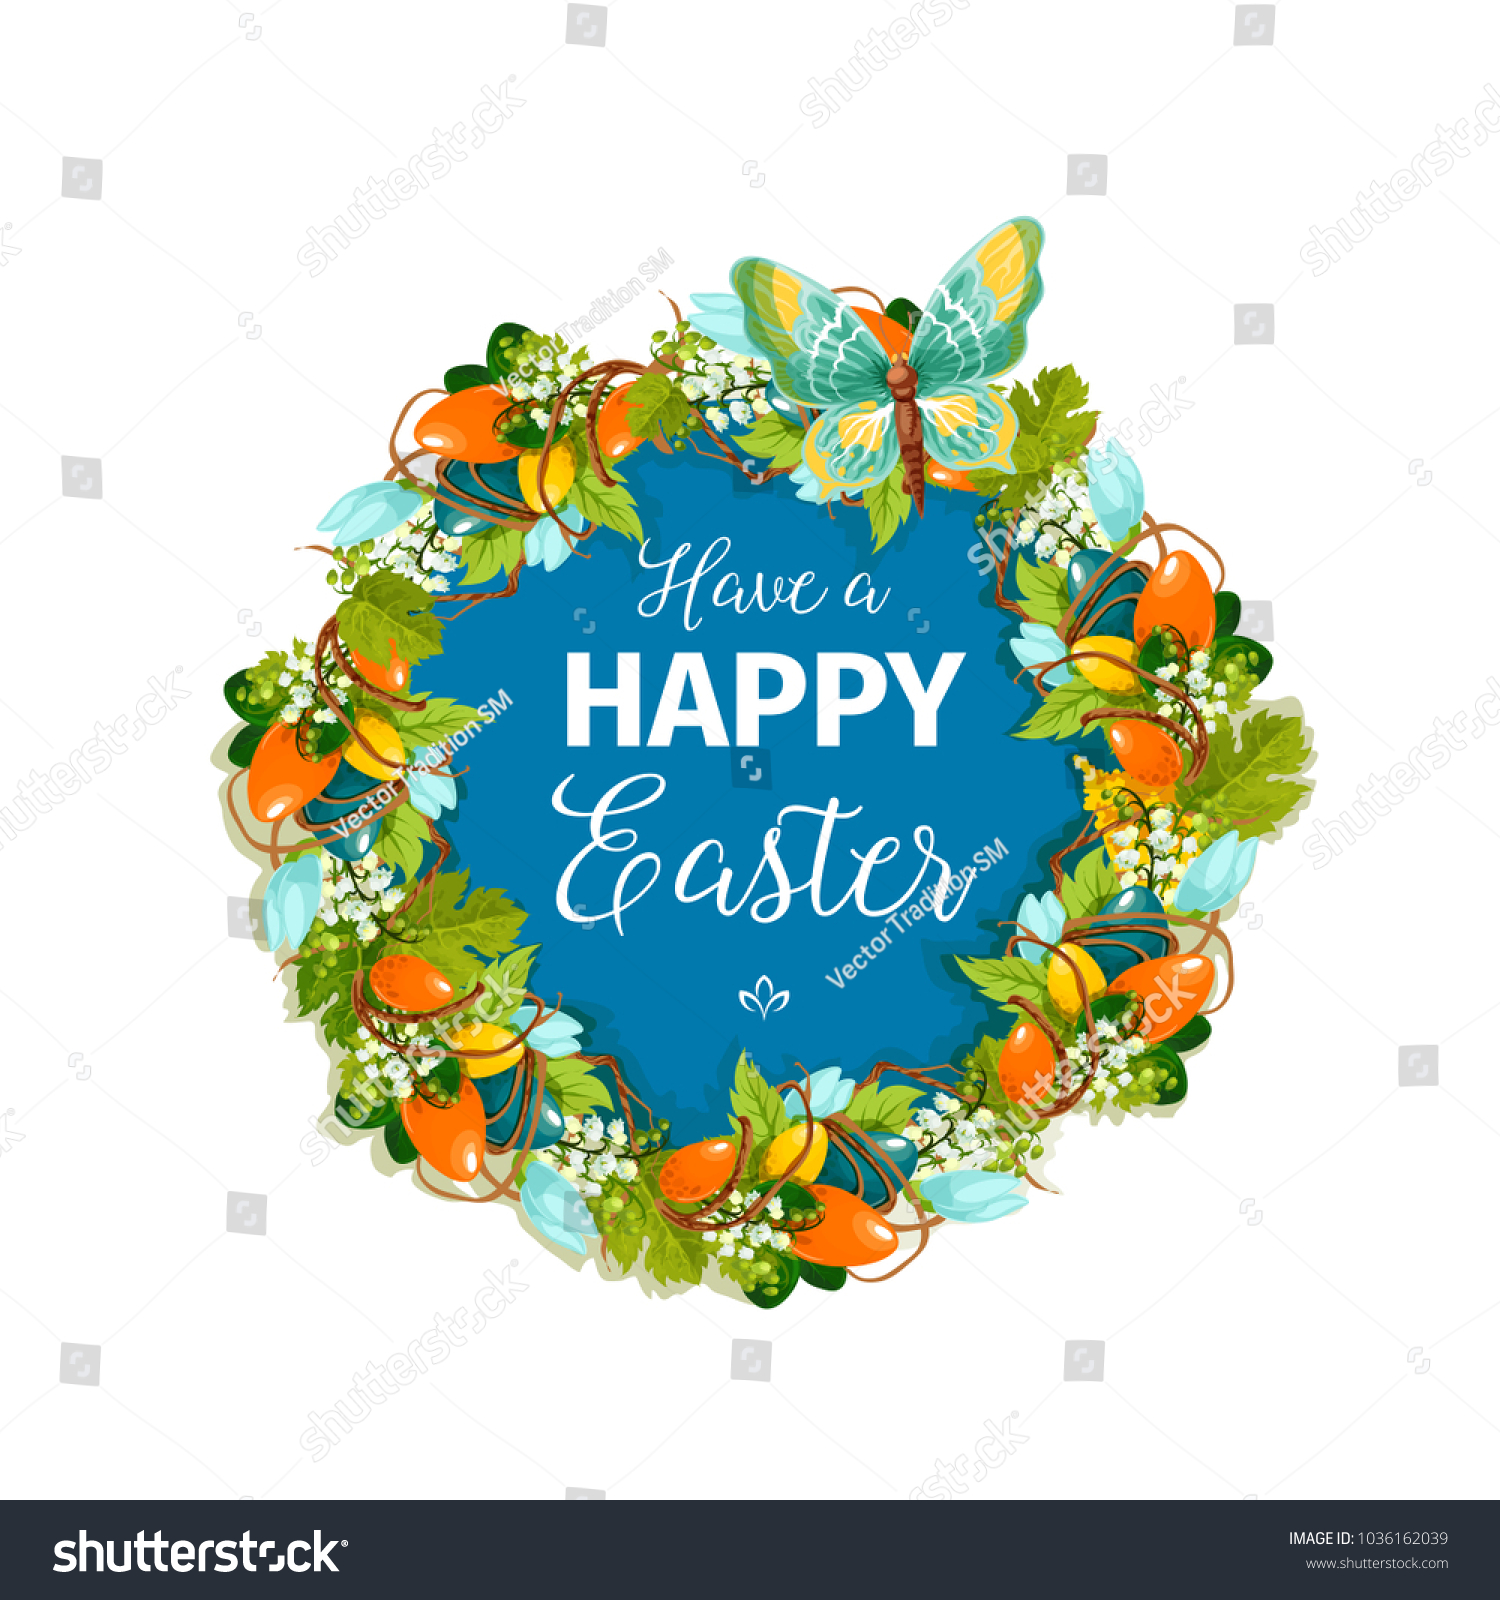 Happy Easter Greeting Card Poster Christian Stock Vector Royalty